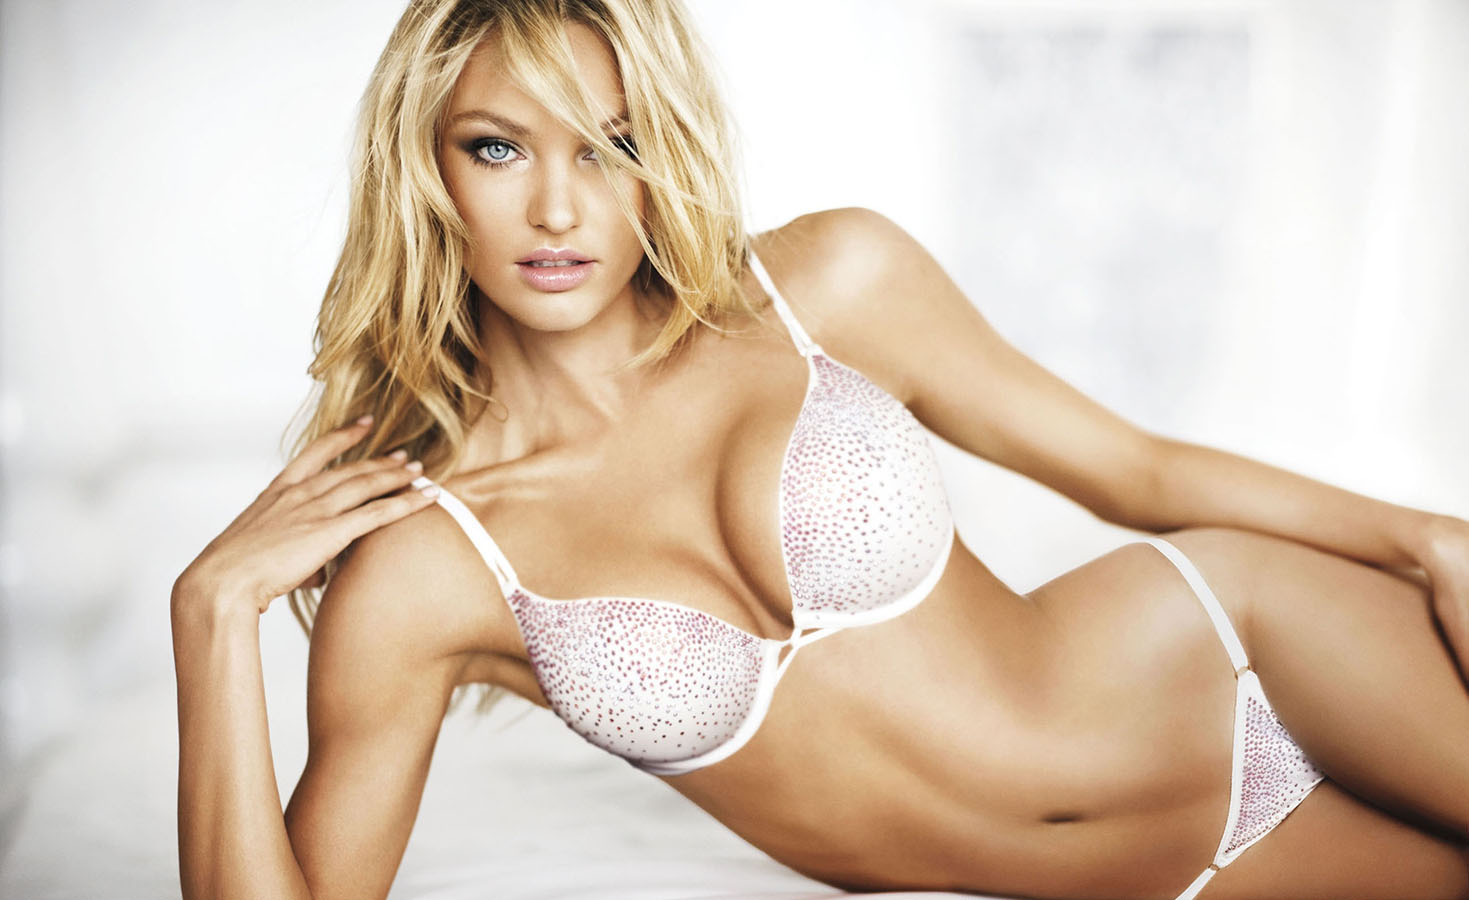 Candice Swanepoe Hot Lingerie Butt Victorias Secret Model